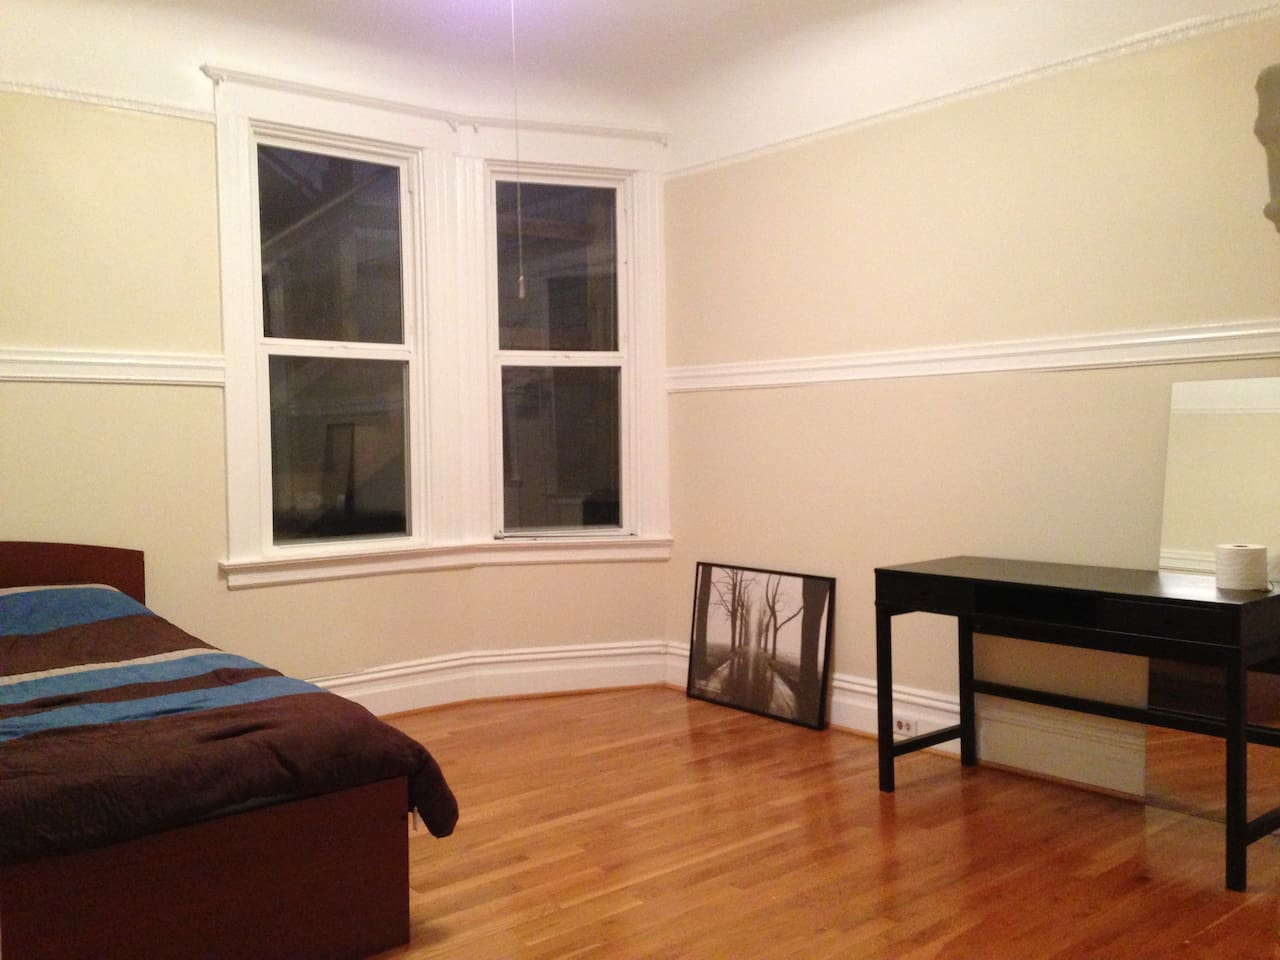 The room is very spacious with desk, chair, dresser, and a very comfortable memory foam bed. All windows now have blinds.